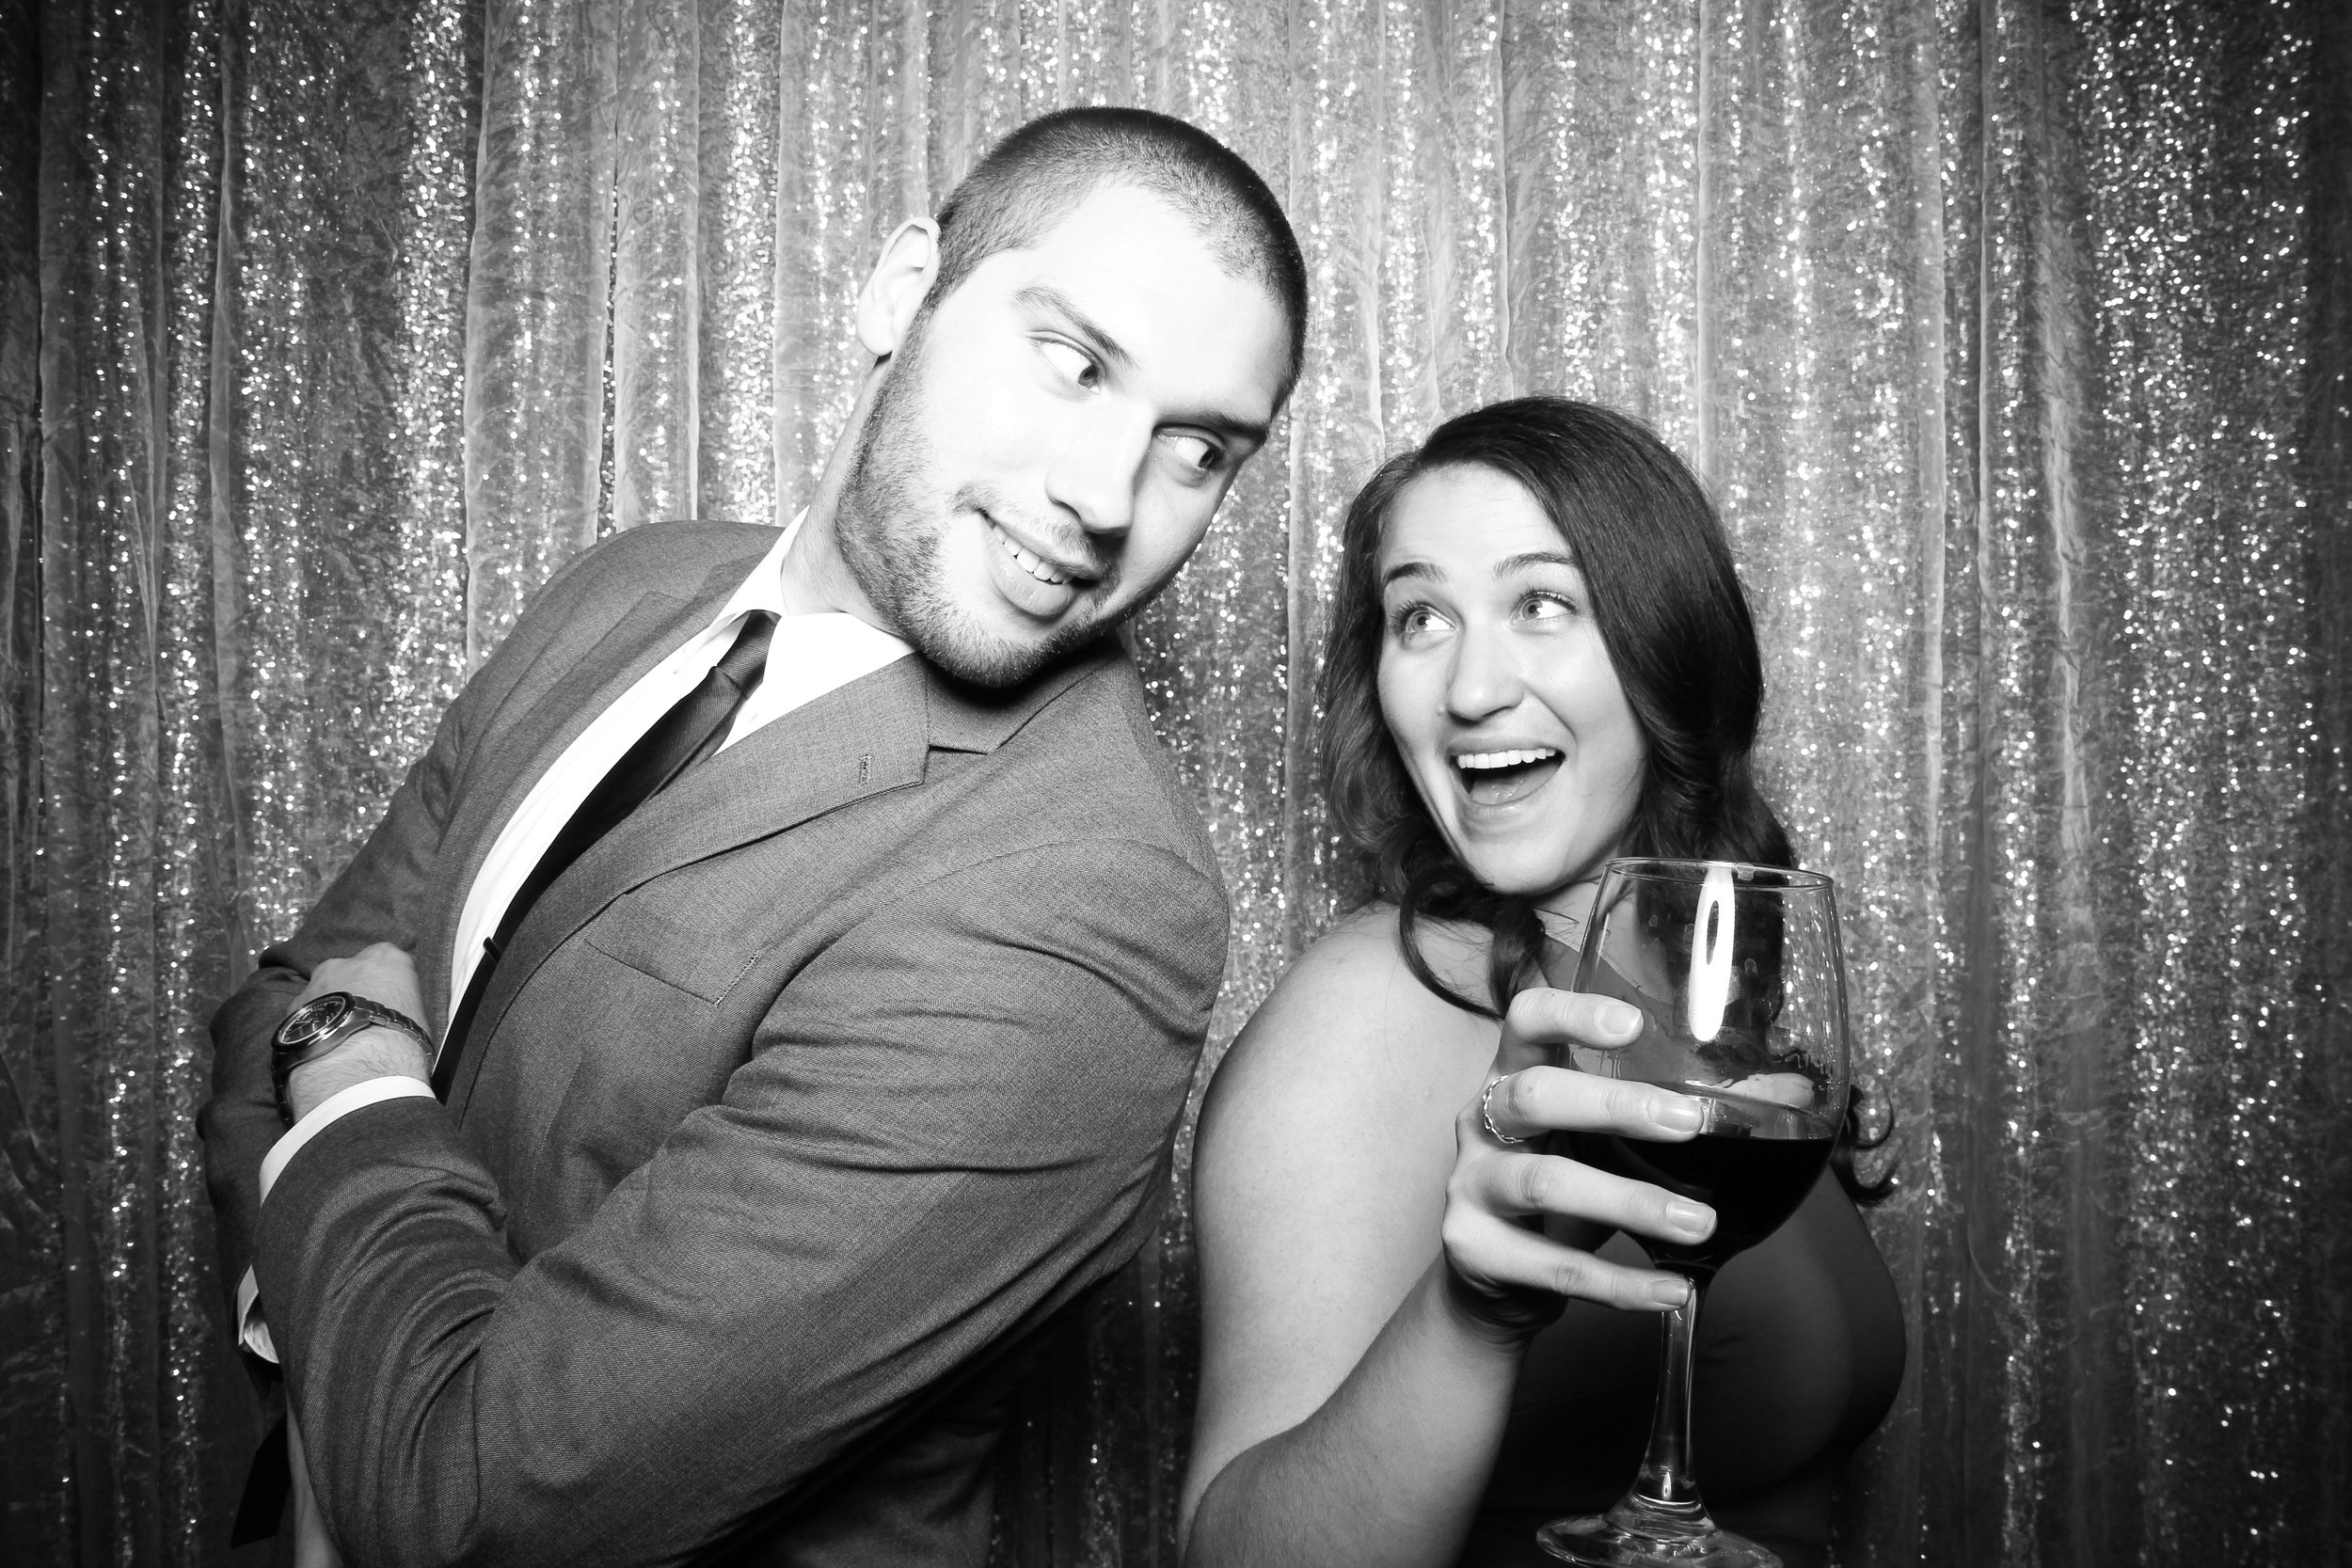 Chicago_Vintage_Photobooth_Montgomery_Club_Holiday_Party_01.jpg